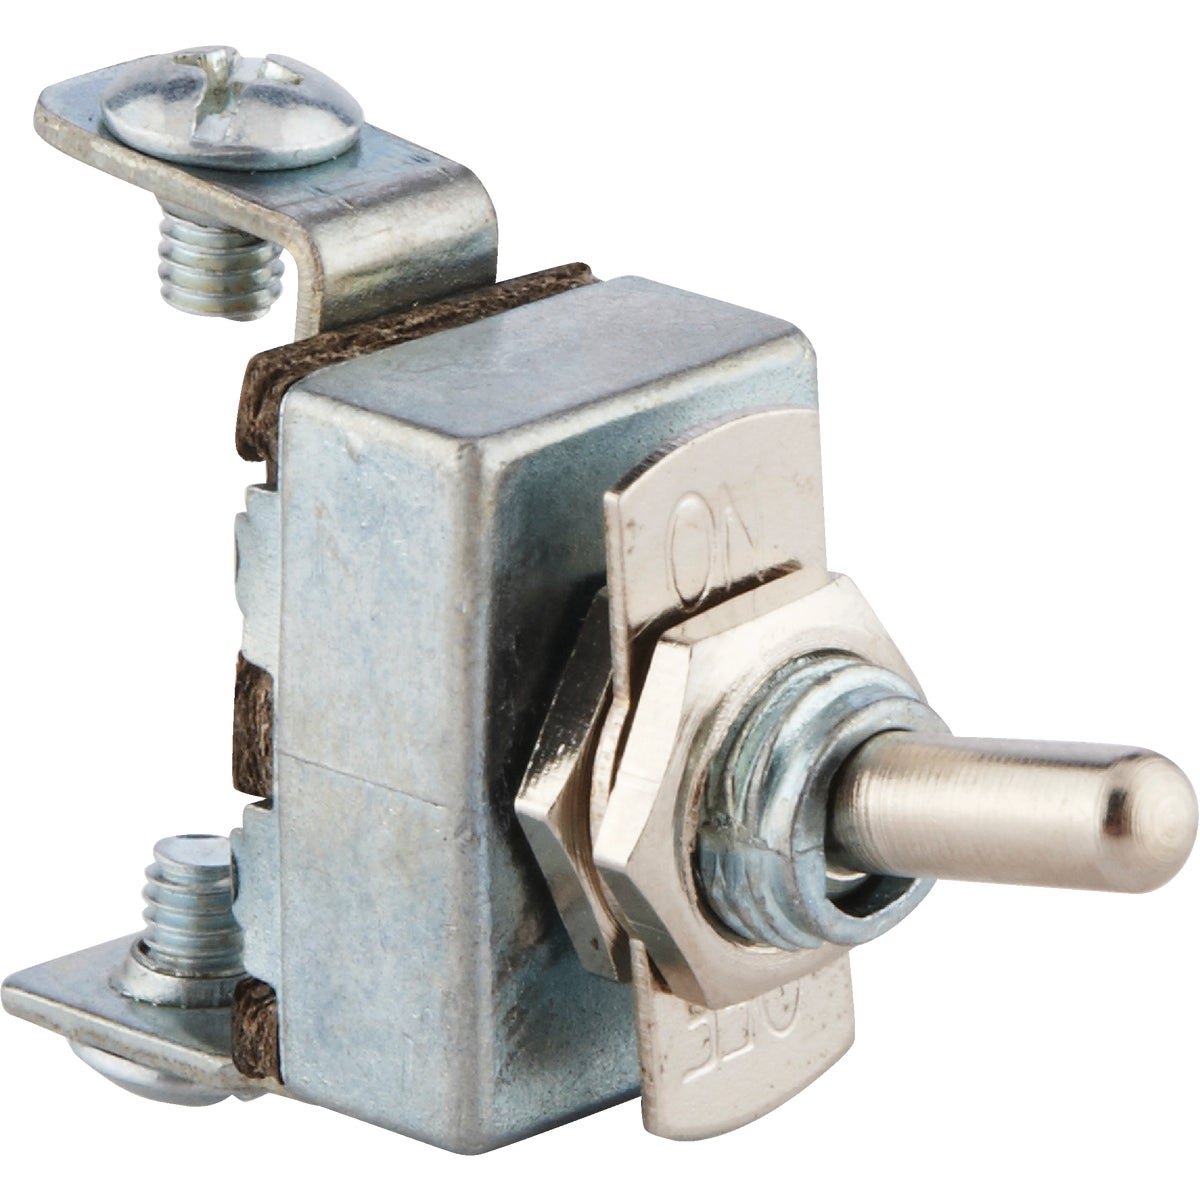 2-POSITION TOGGLE SWITCH - 41700 by G B Electrical Inc